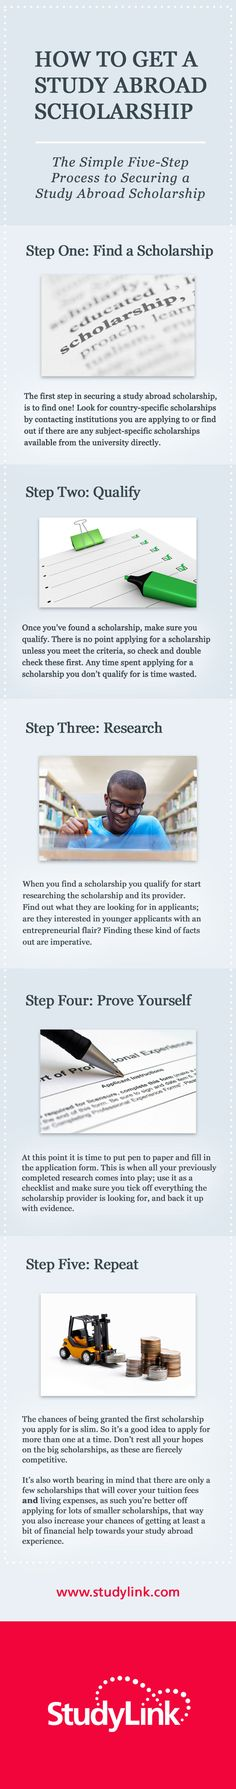 How to Get a Study Abroad Scholarship